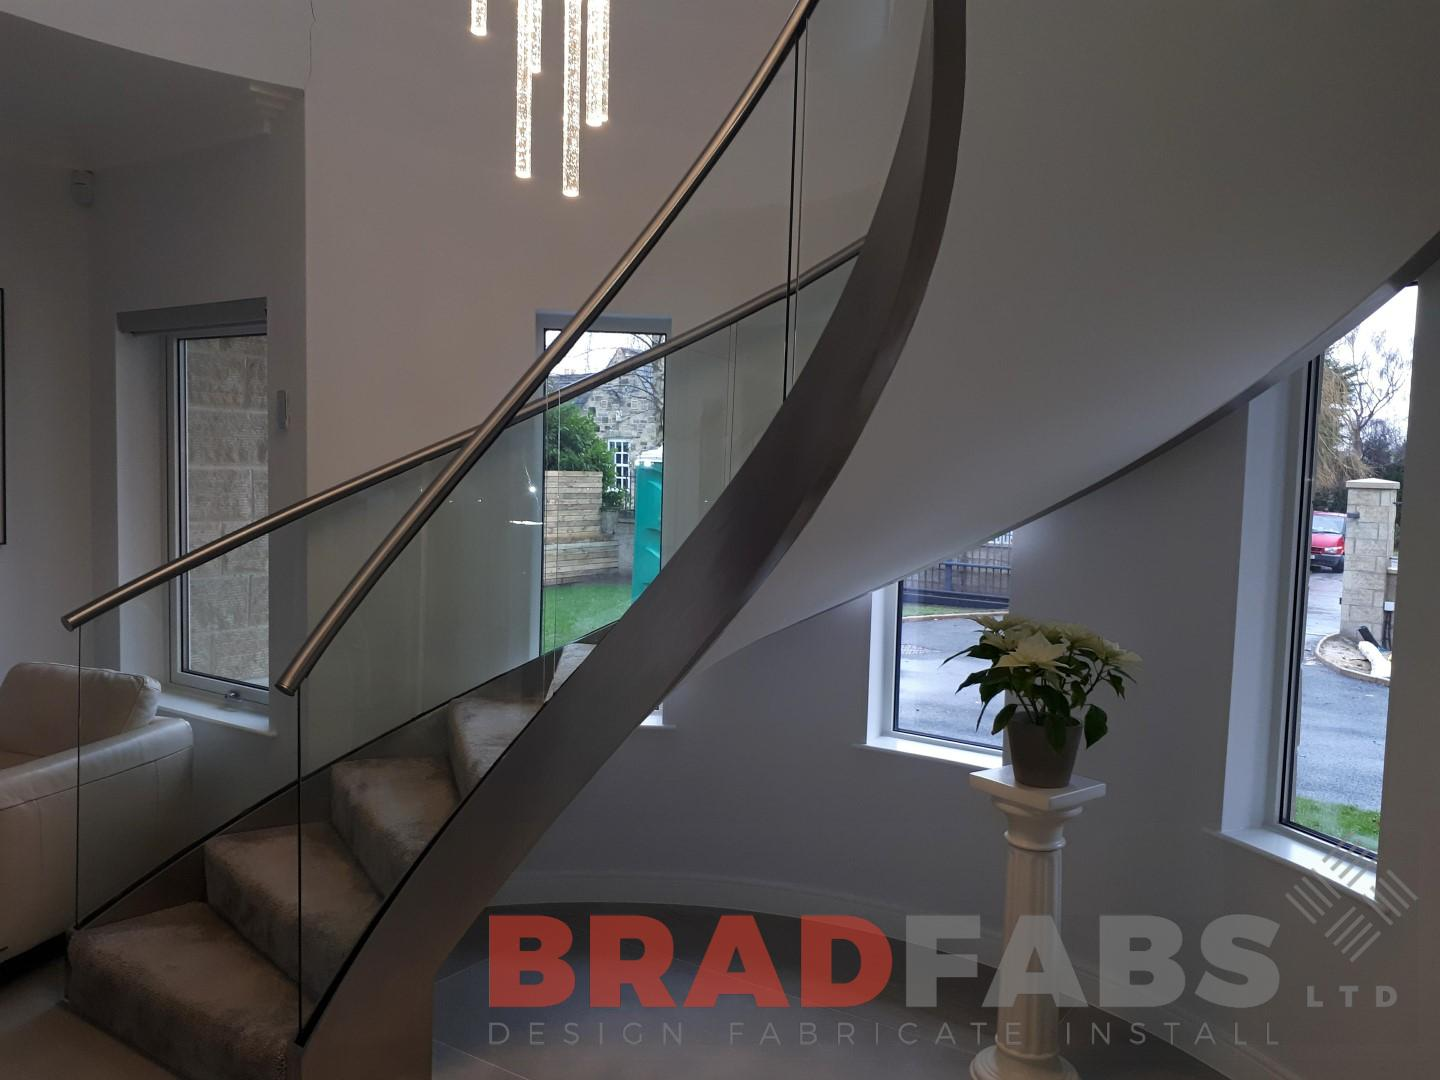 Bradfabs are experts in Helix staircases